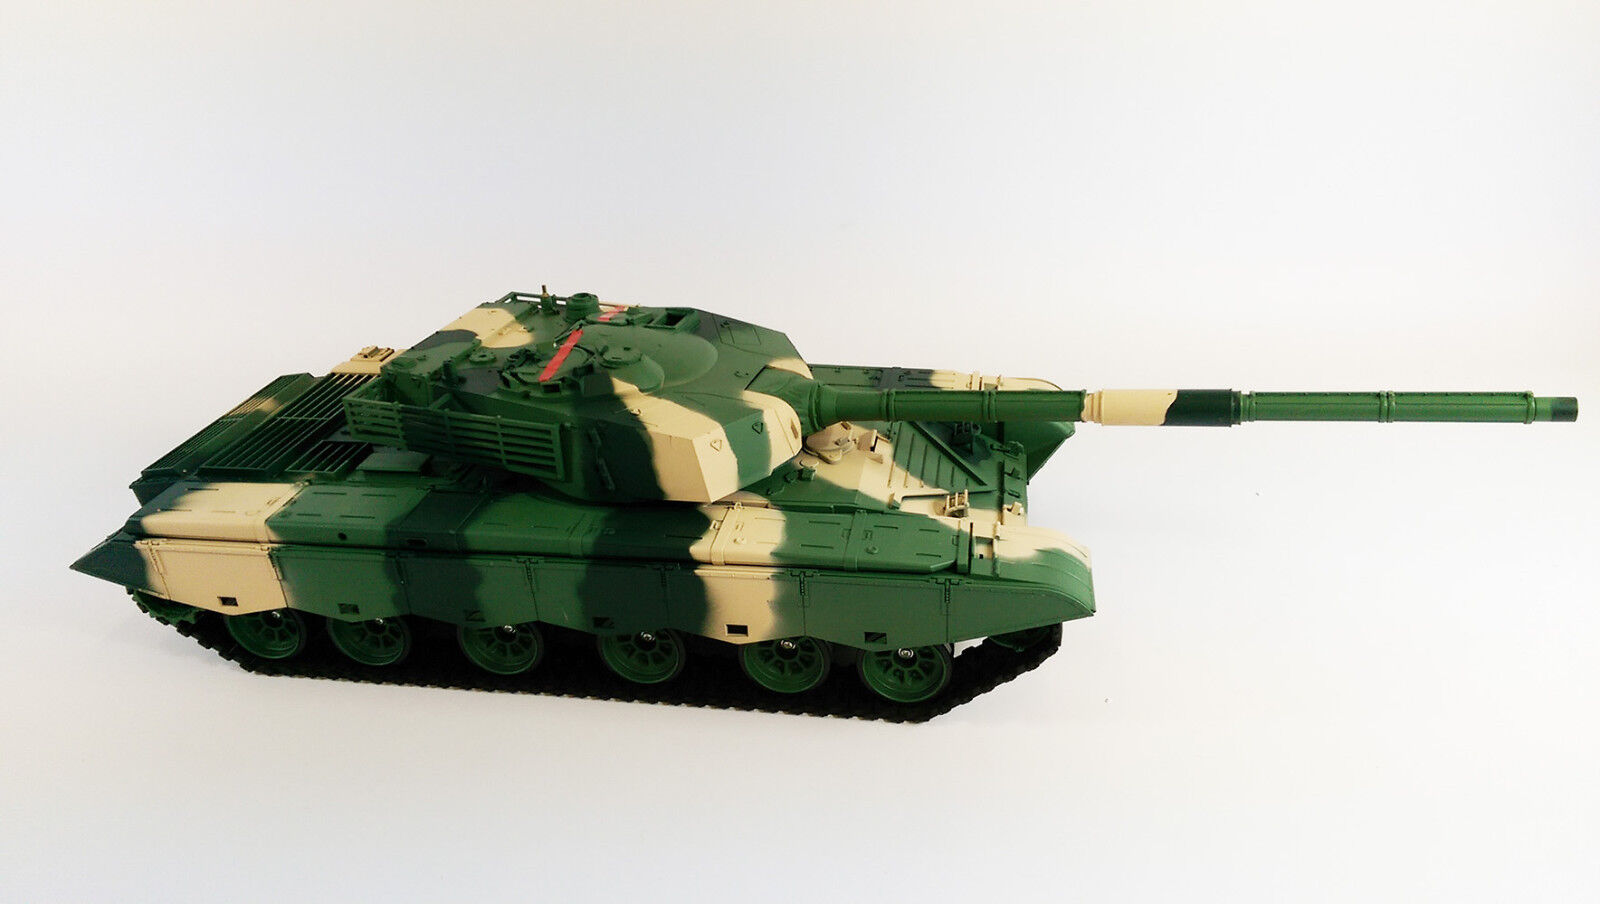 UPGRADED 2.4GHZ Smoke Sound Heng Long Rc Type 99 Rc Battle